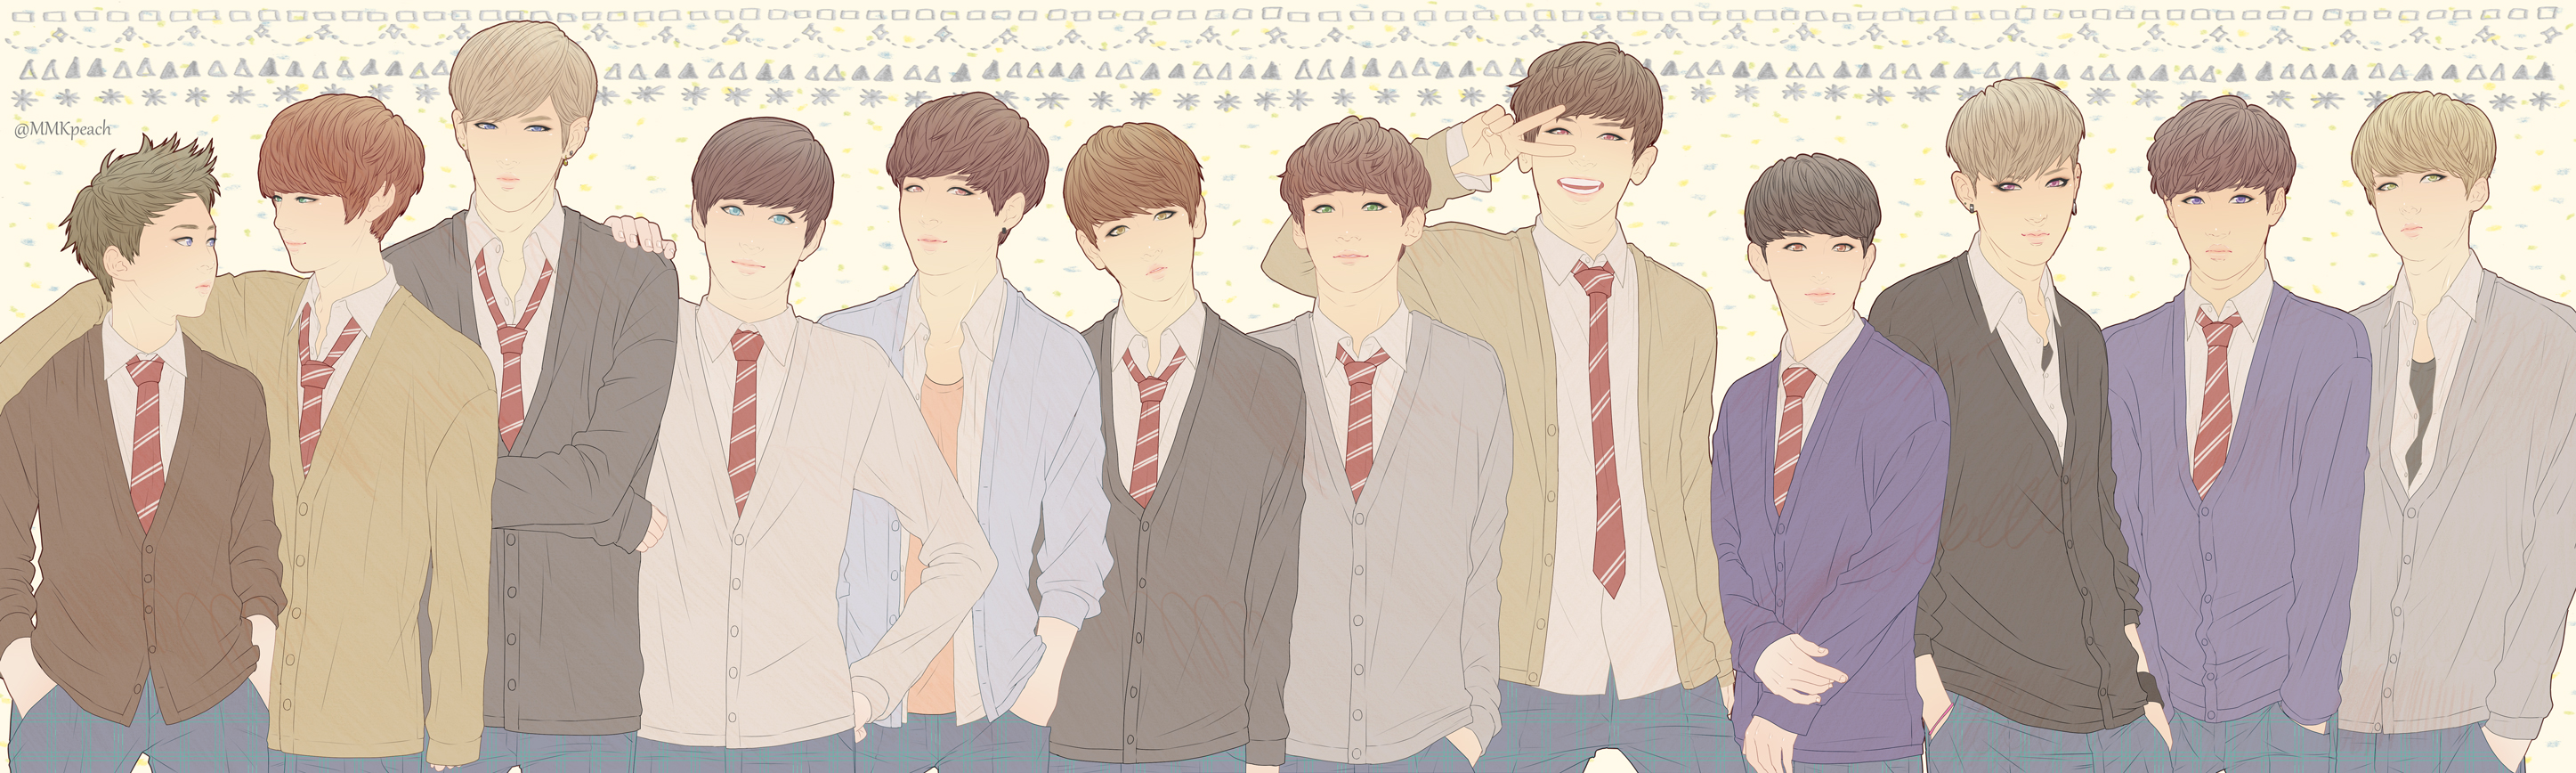 Exo K Pop Zerochan Anime Image Board